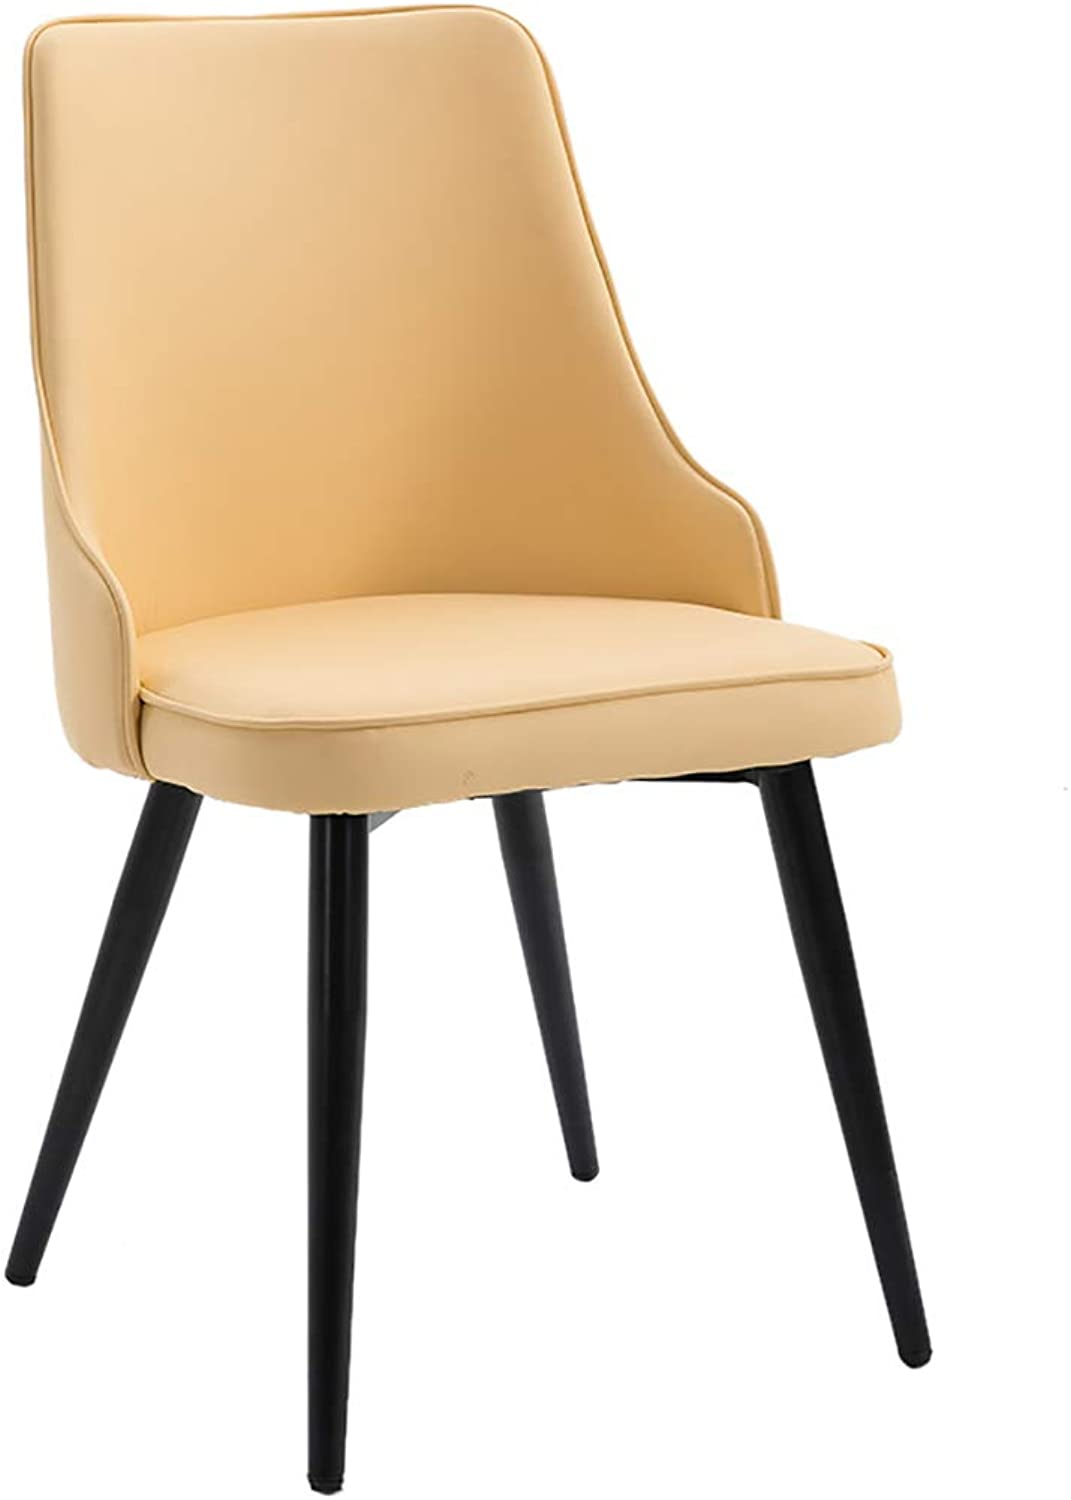 Nordic Wrought Iron Leather Dining Chair, Modern Minimalist Home Adult Lounge Chair, Ergonomic Design, for Restaurant Office Counter Family